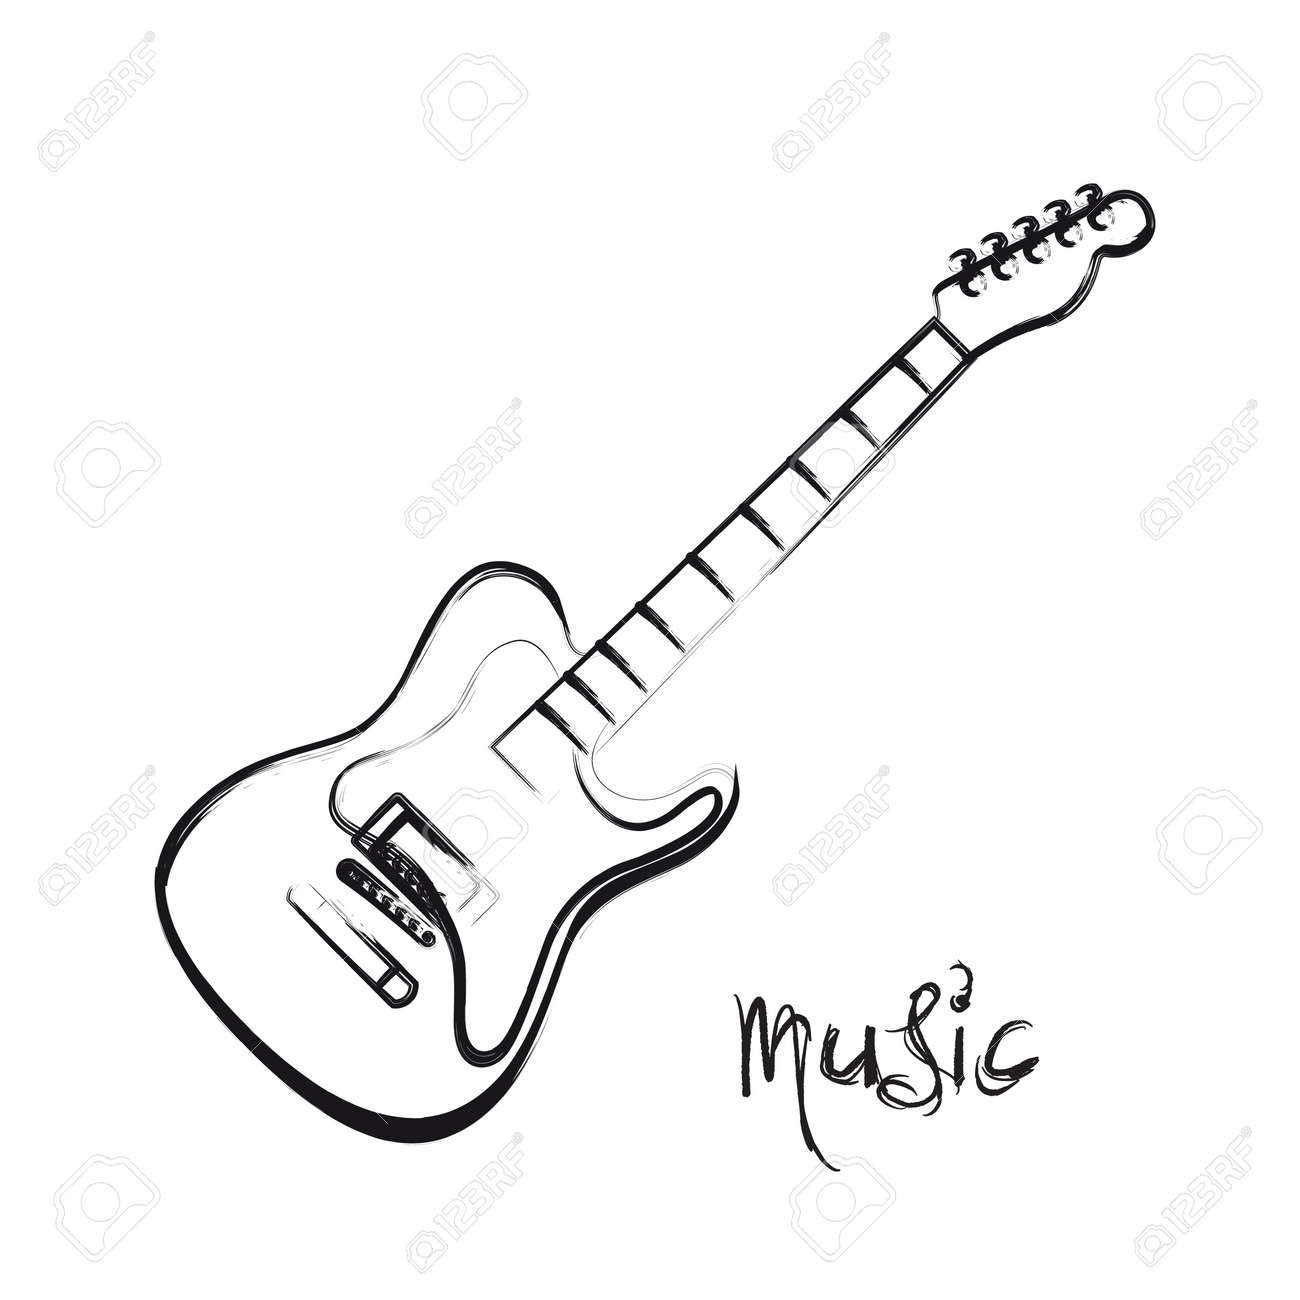 Electric Guitar Hand Drawn Easy All Editable Stock Vector